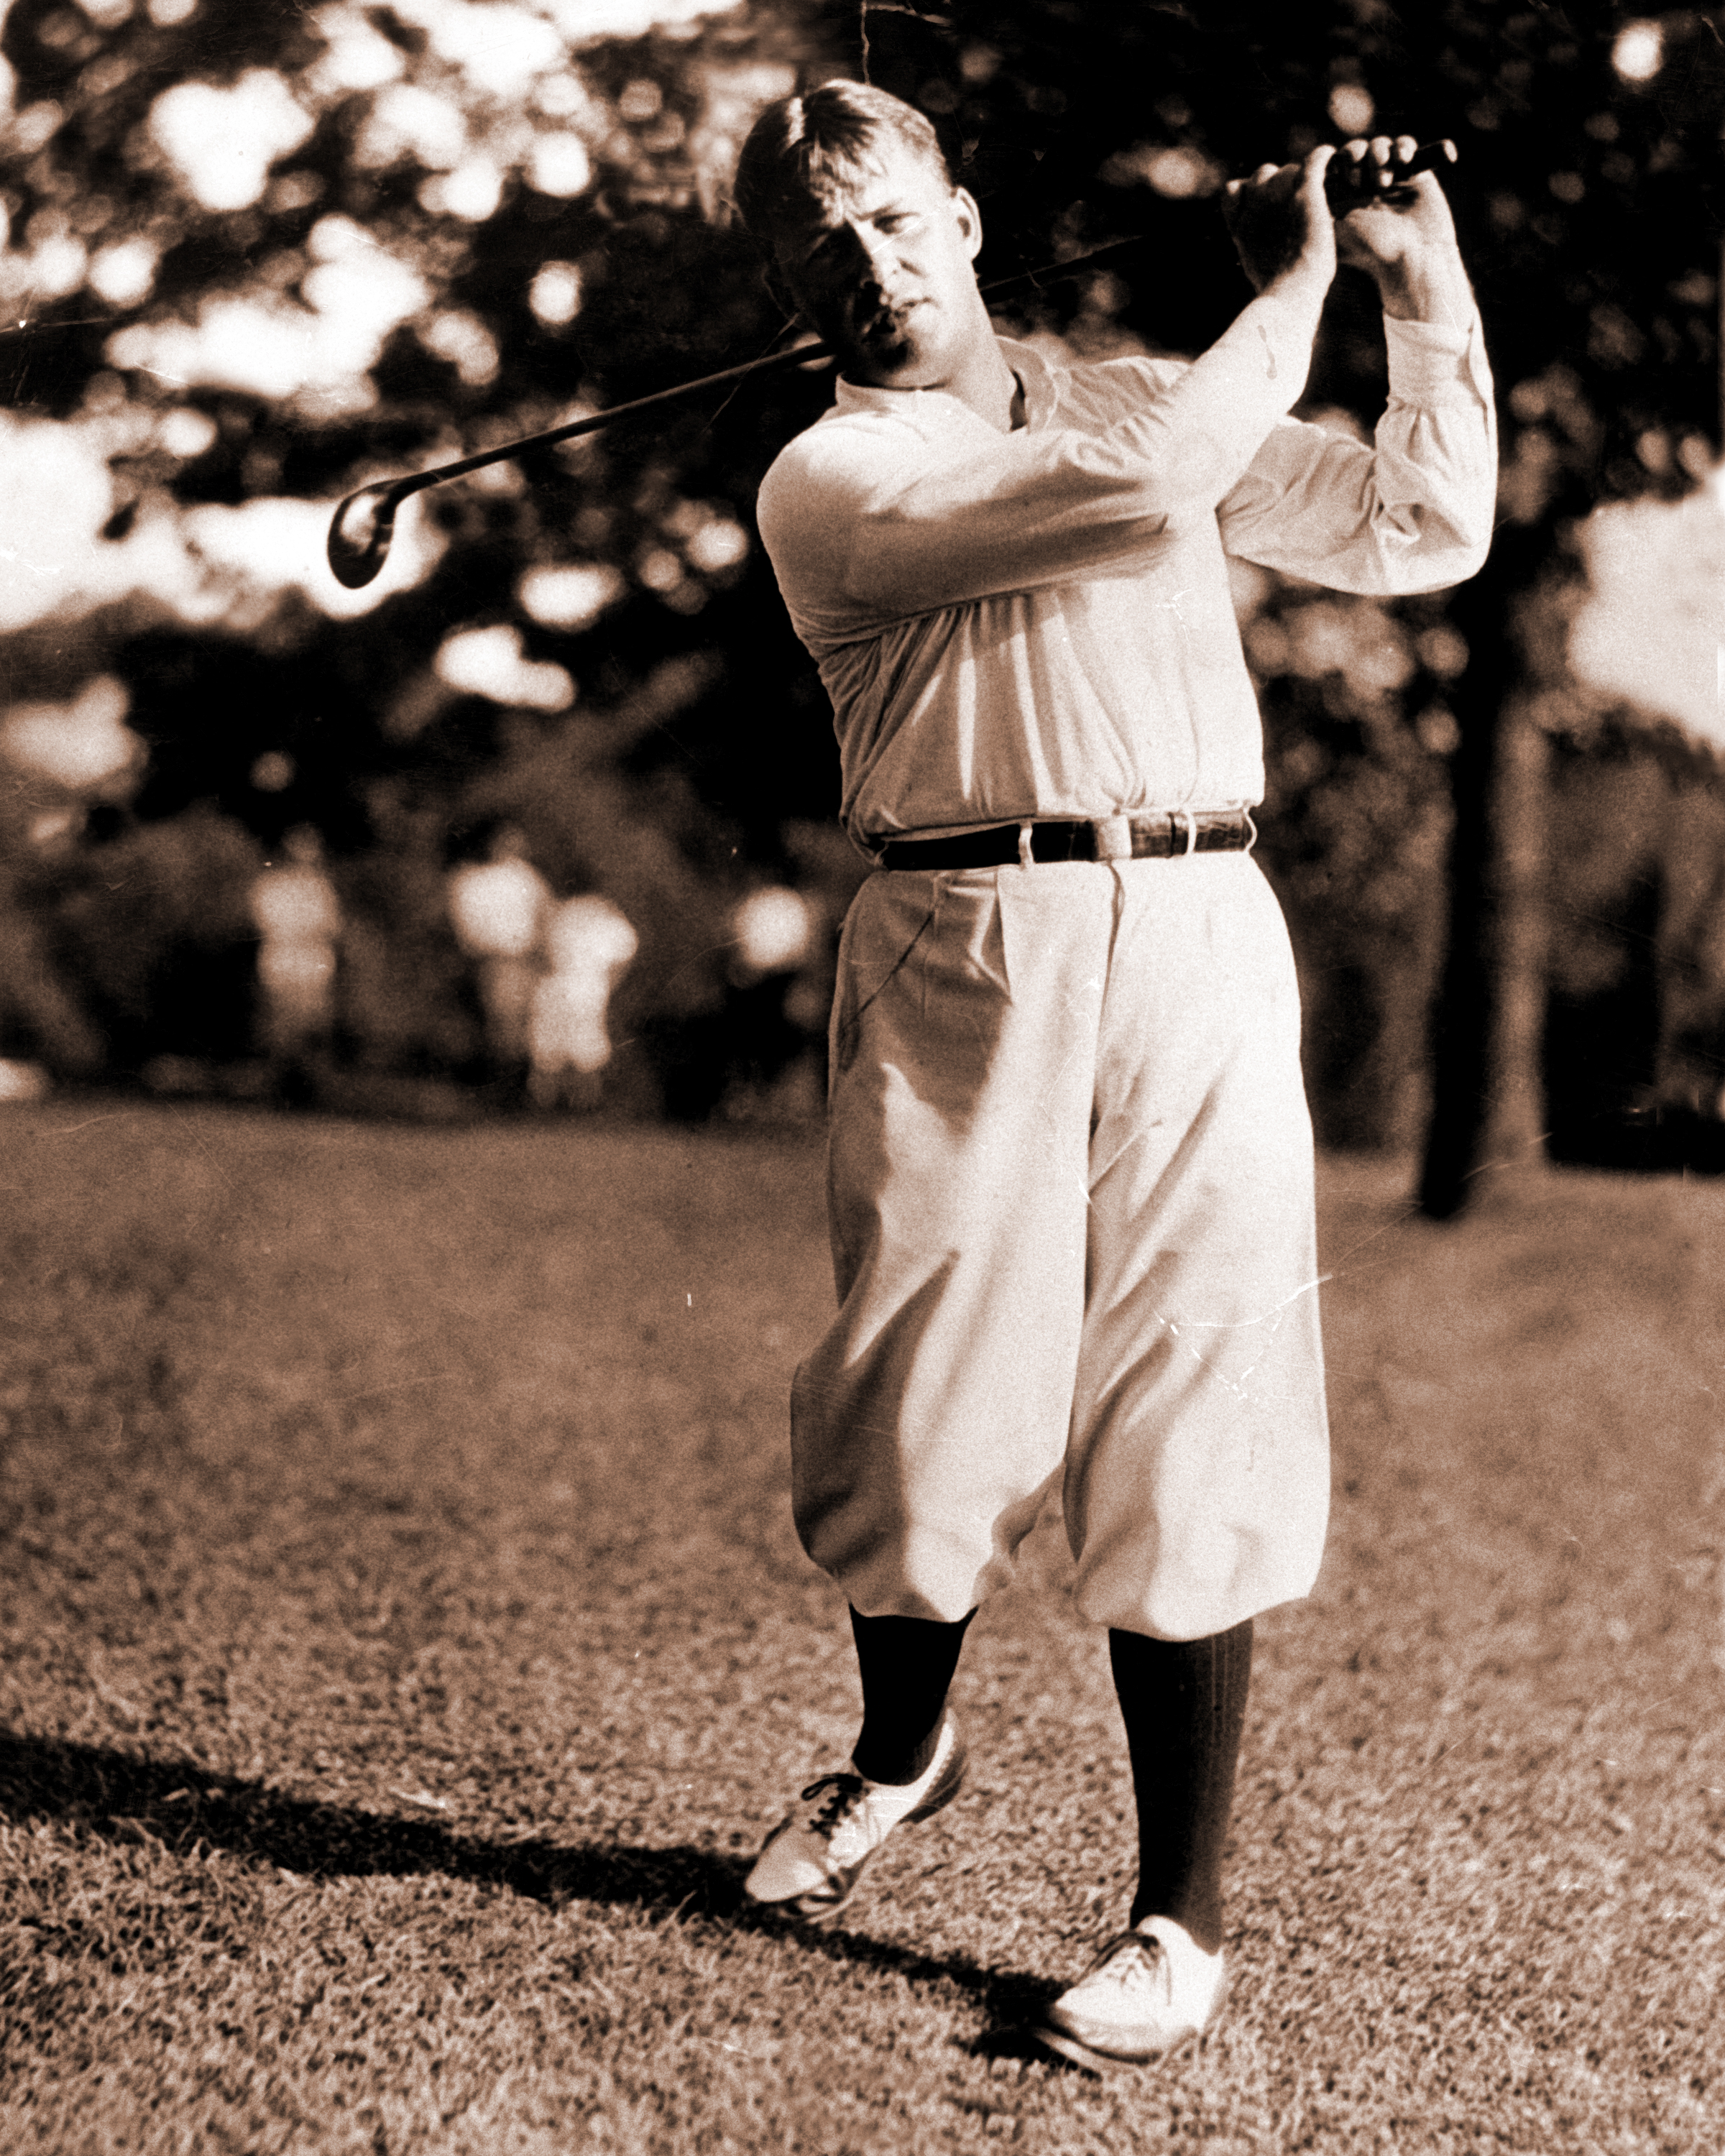 The great Bobby Jones at Biltmore Forest in the mid-1920s.